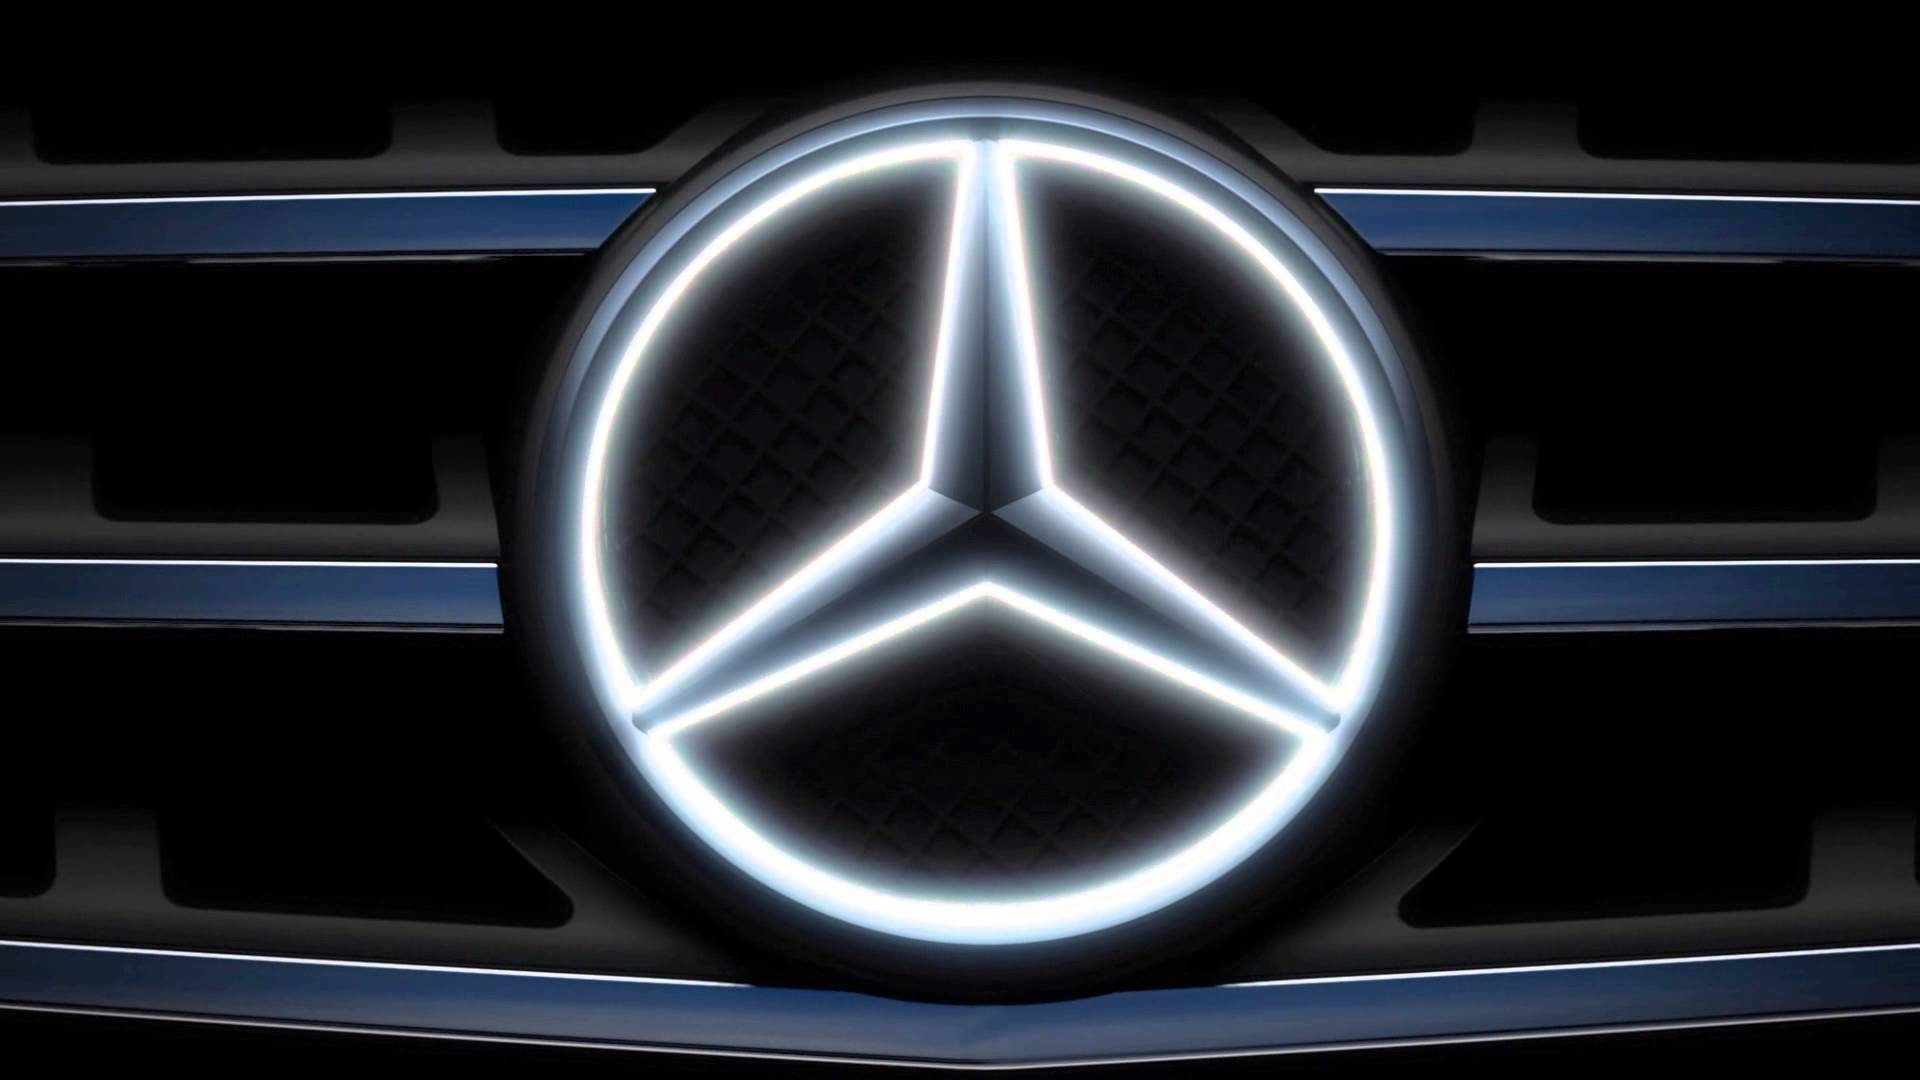 benz logo wallpapers wallpaper - photo #33